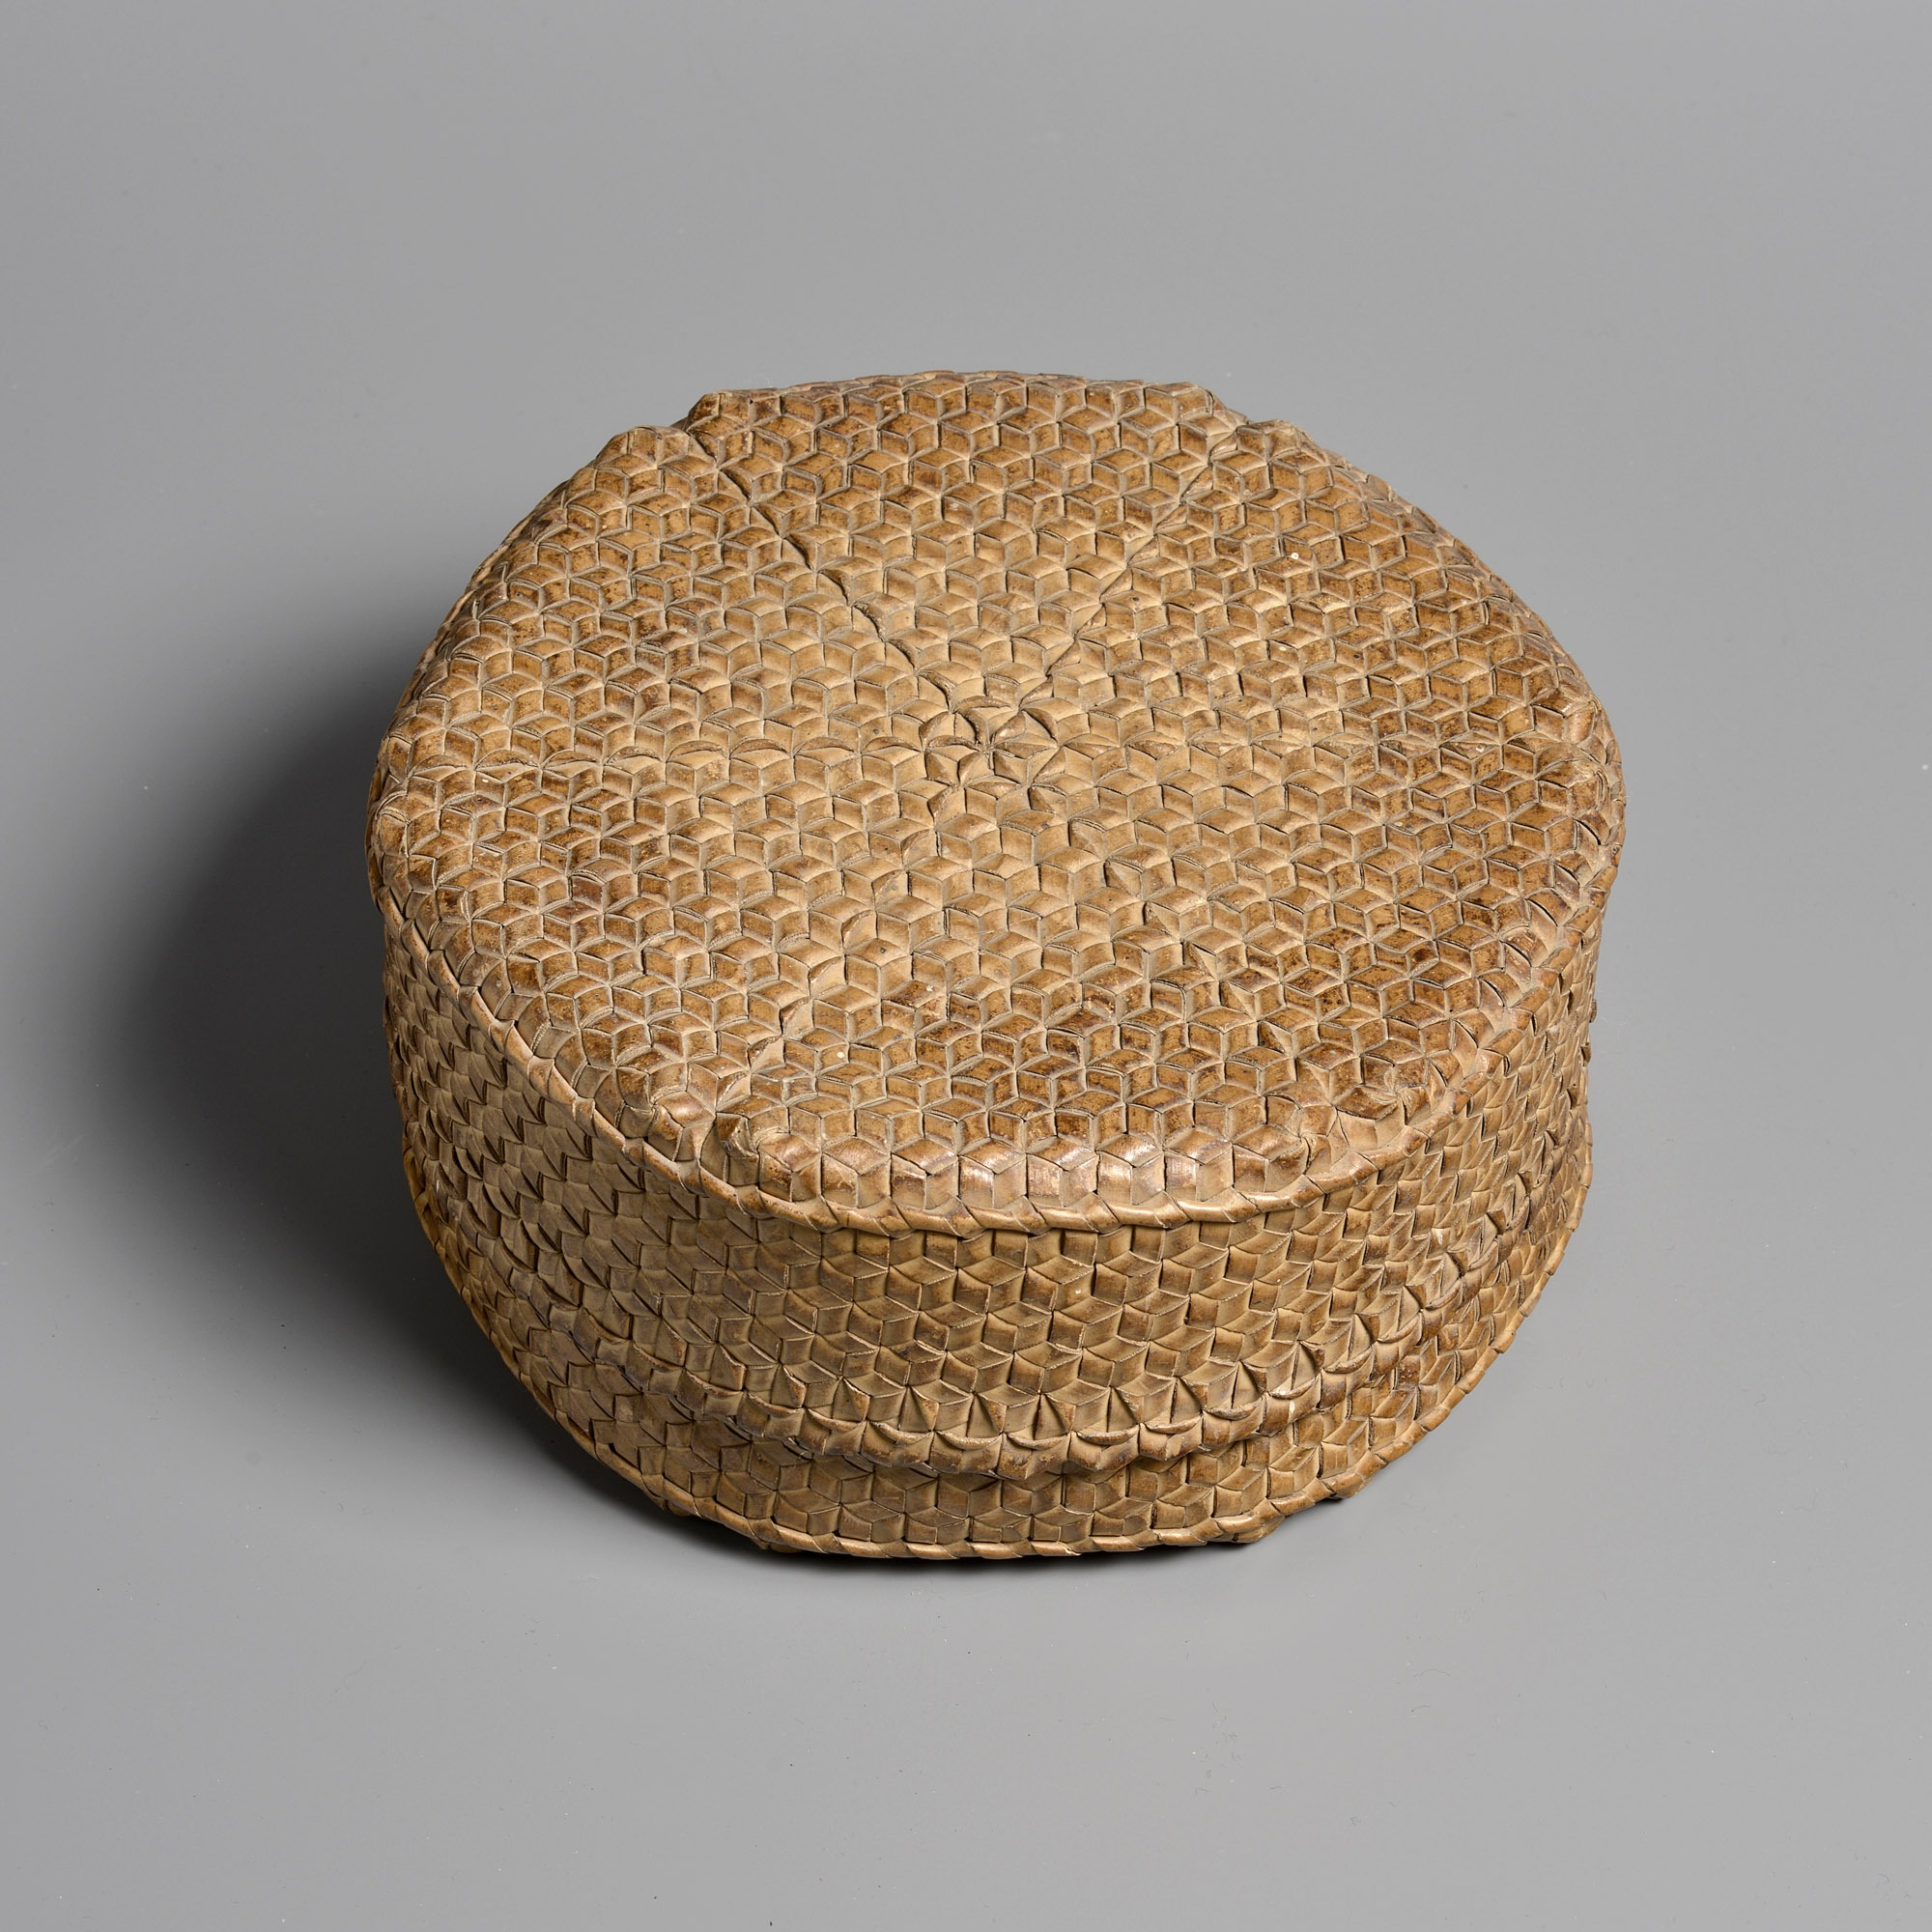 Timur Basketry.